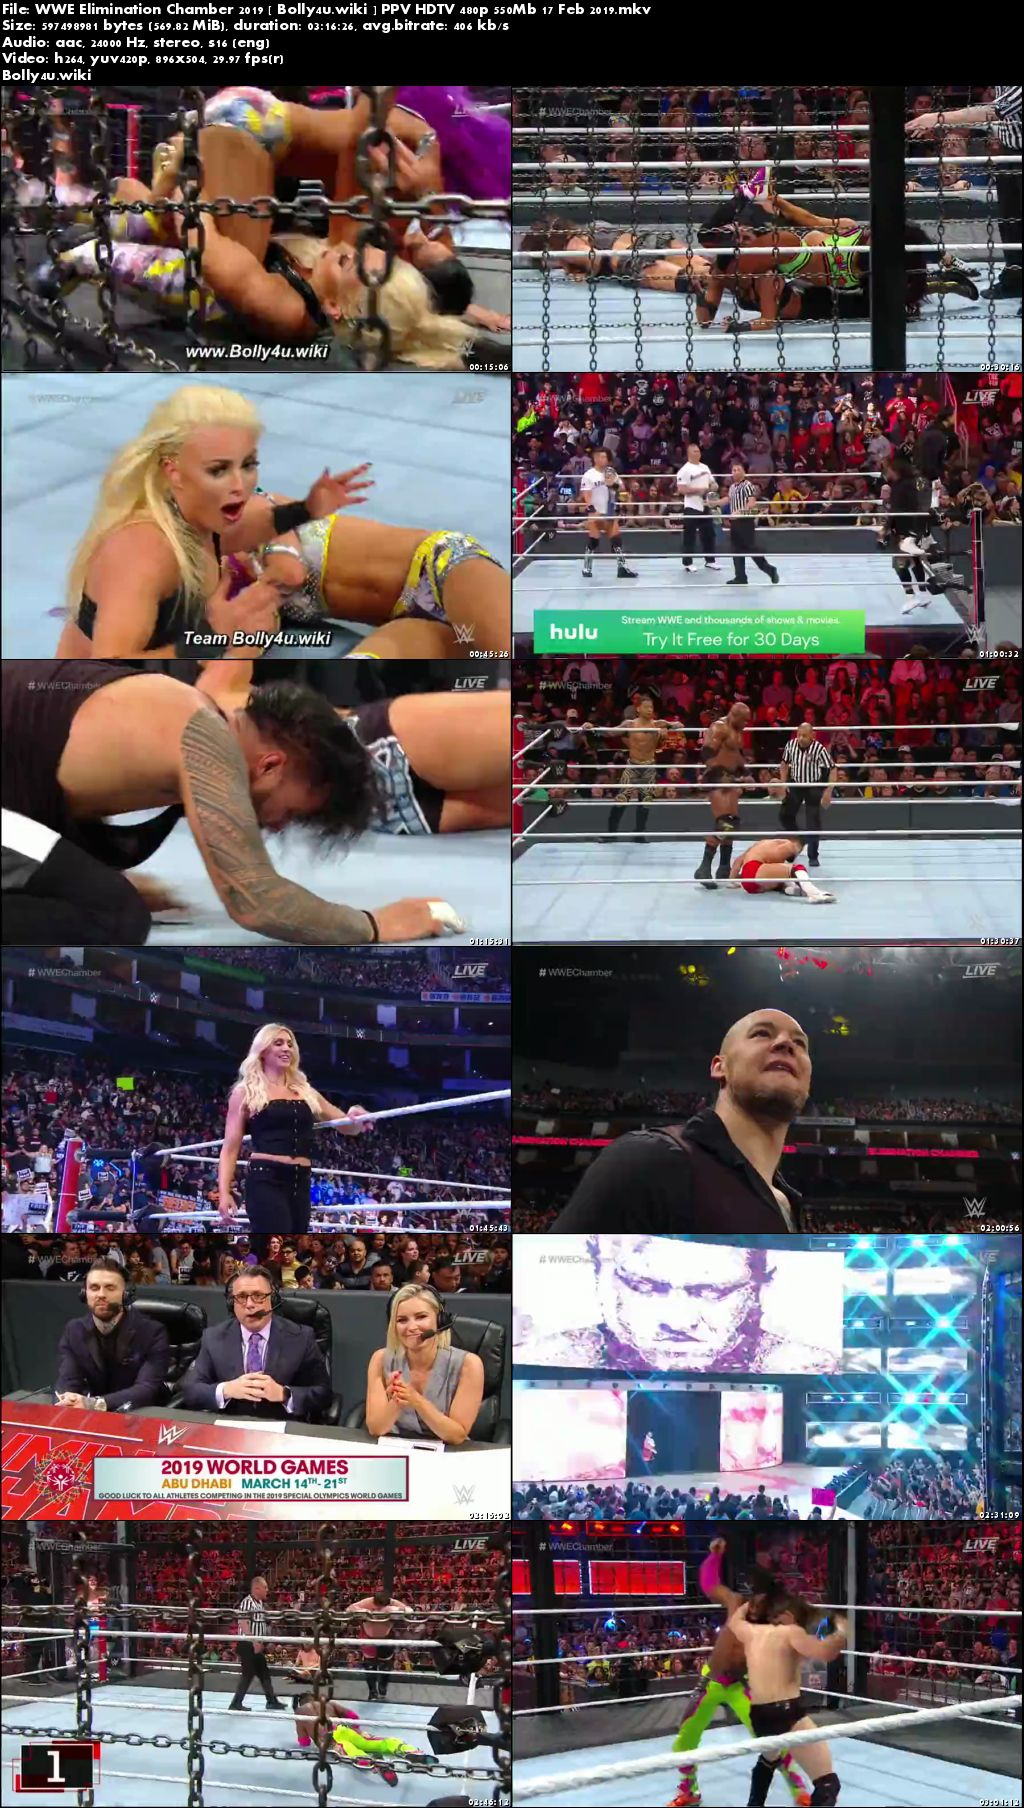 WWE Elimination Chamber 2019 PPV HDTV 480p 550Mb 17 Feb 2019 Download